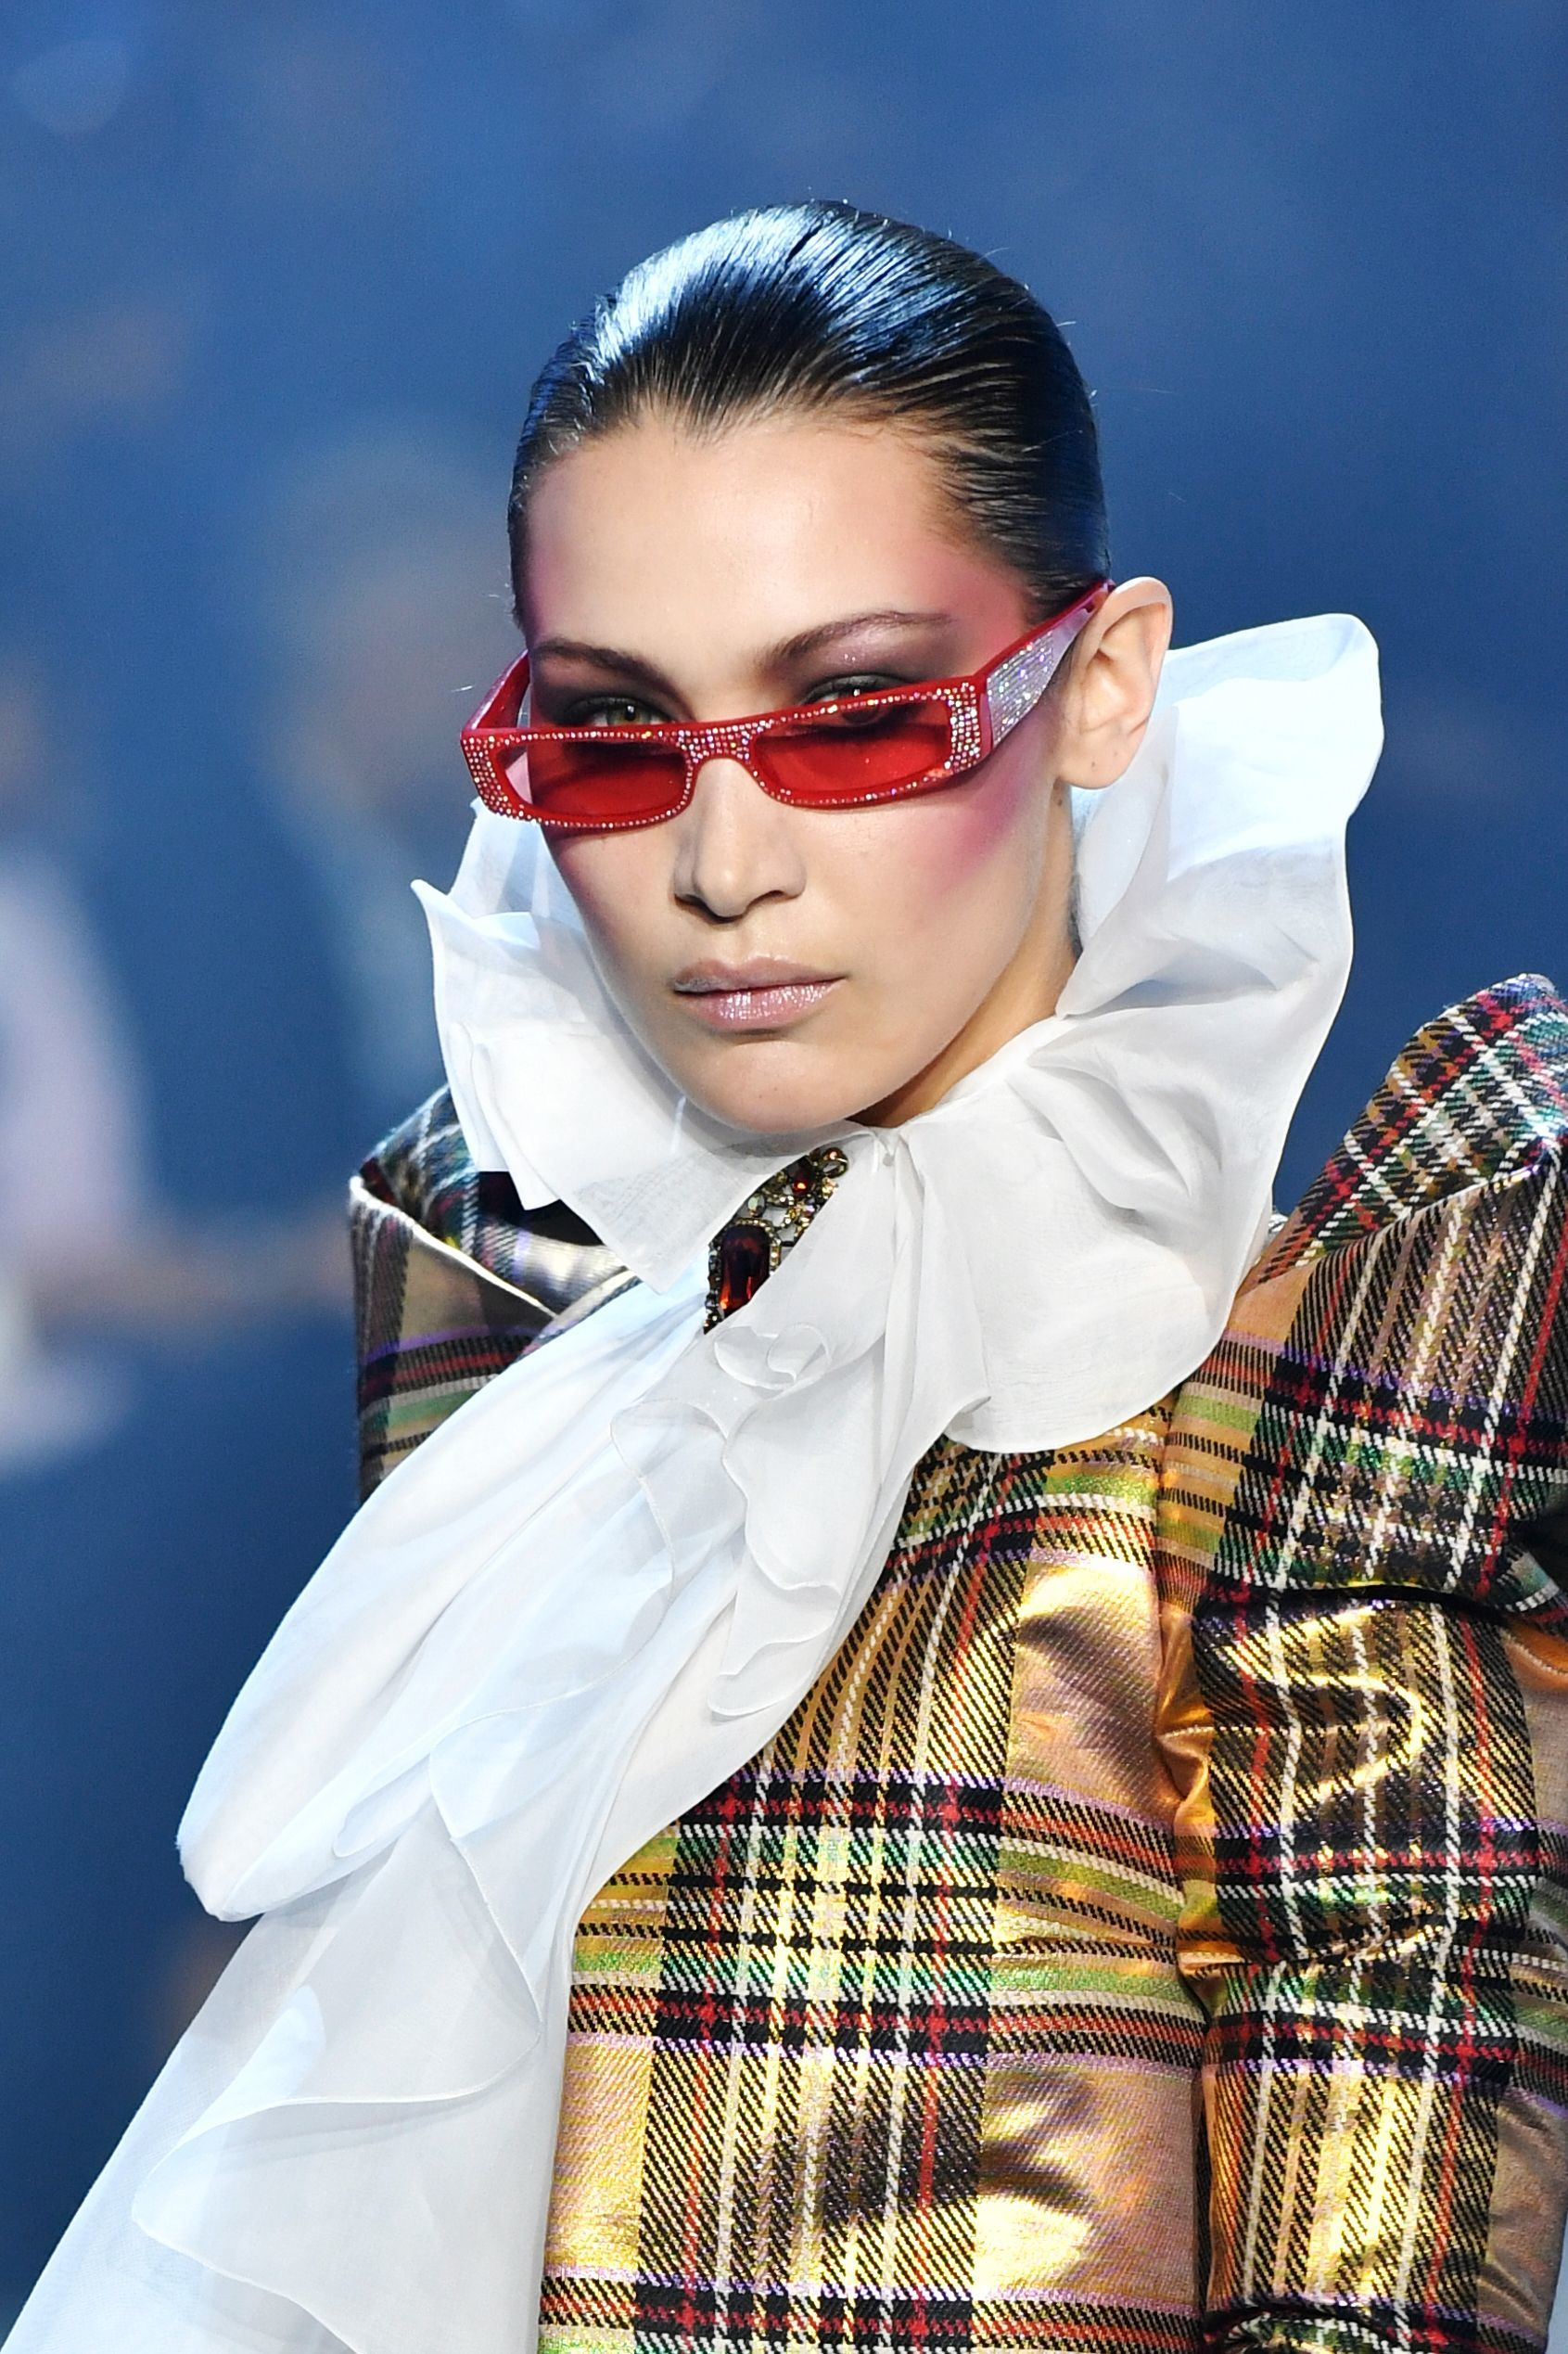 close up shot of bella hadid with micro sunglasses and slicked back hairstyle, wearing neck collar and checked shirt